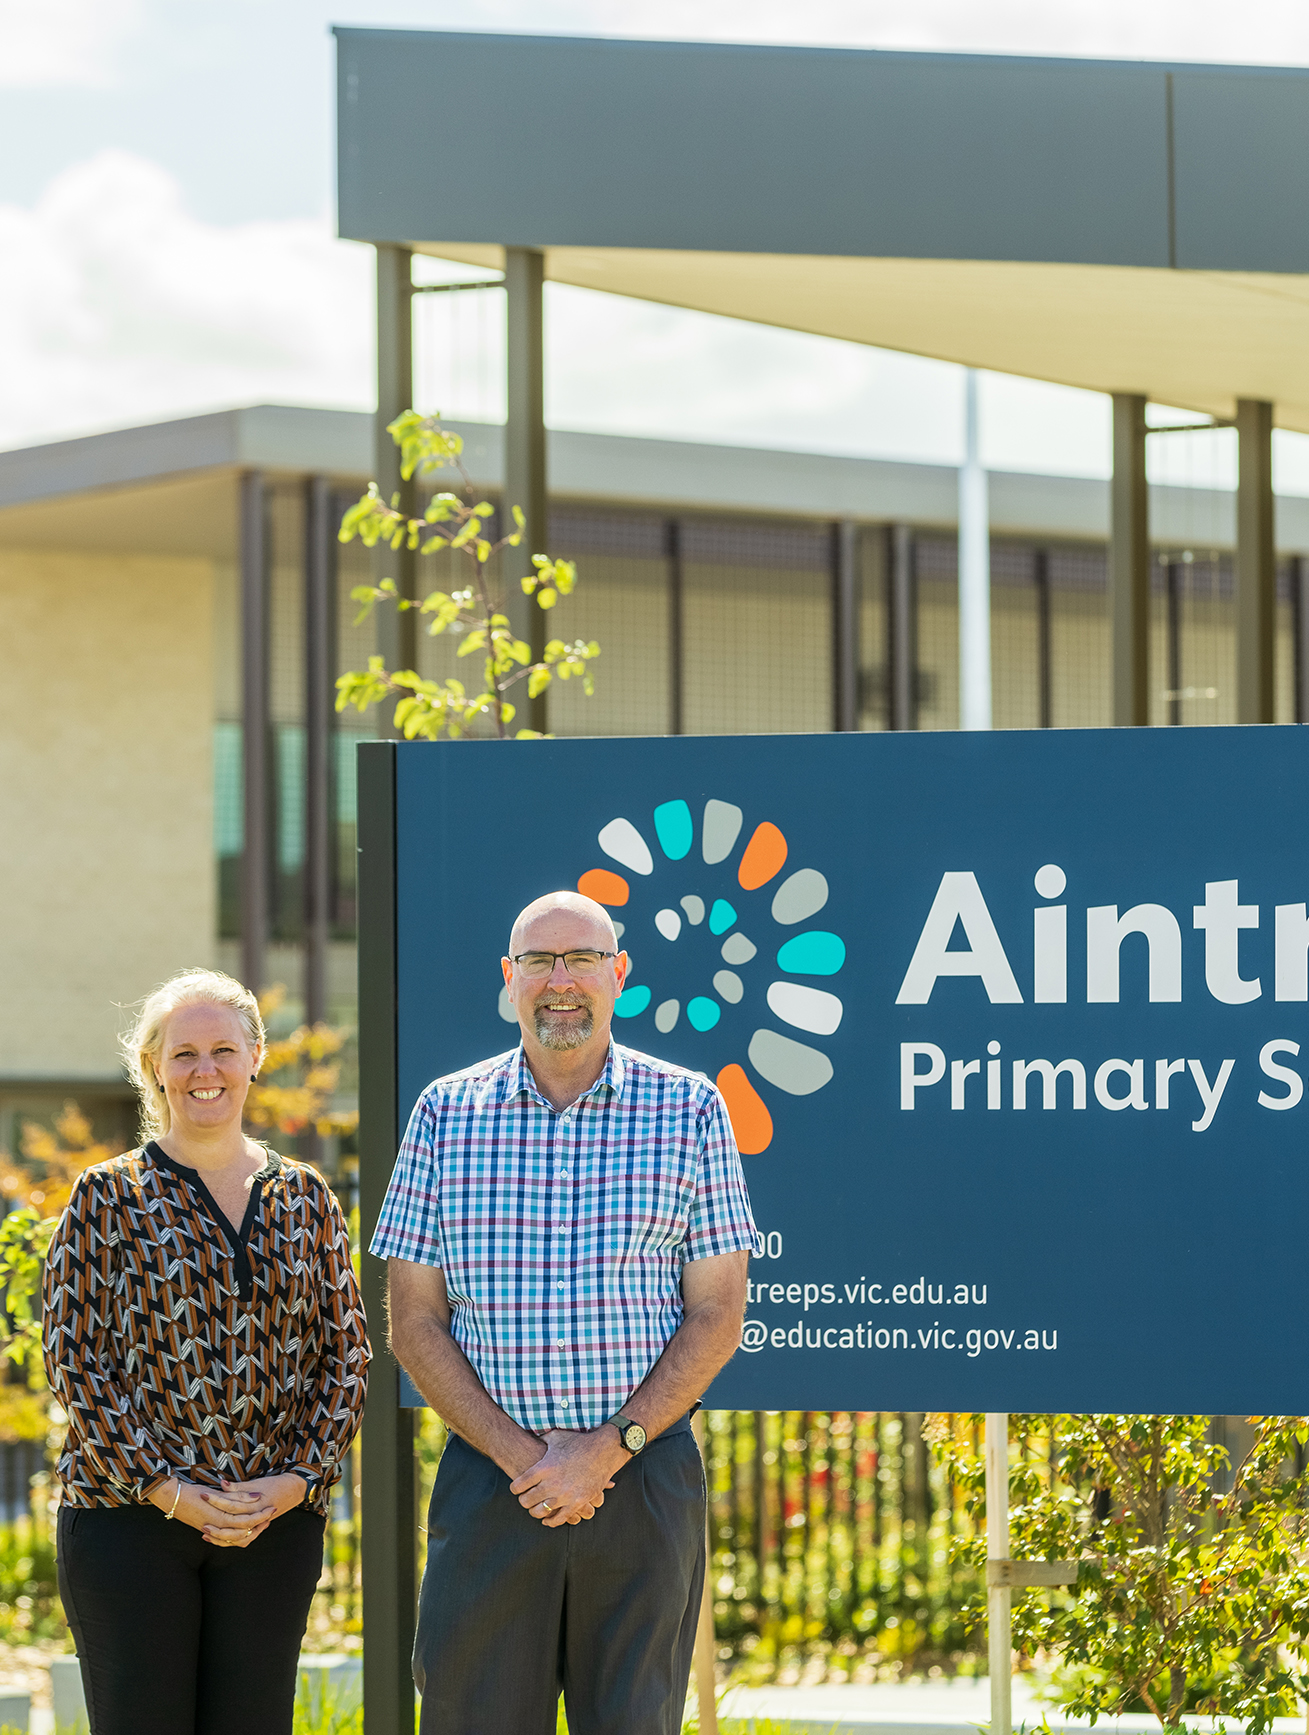 Our first public primary school is now open!